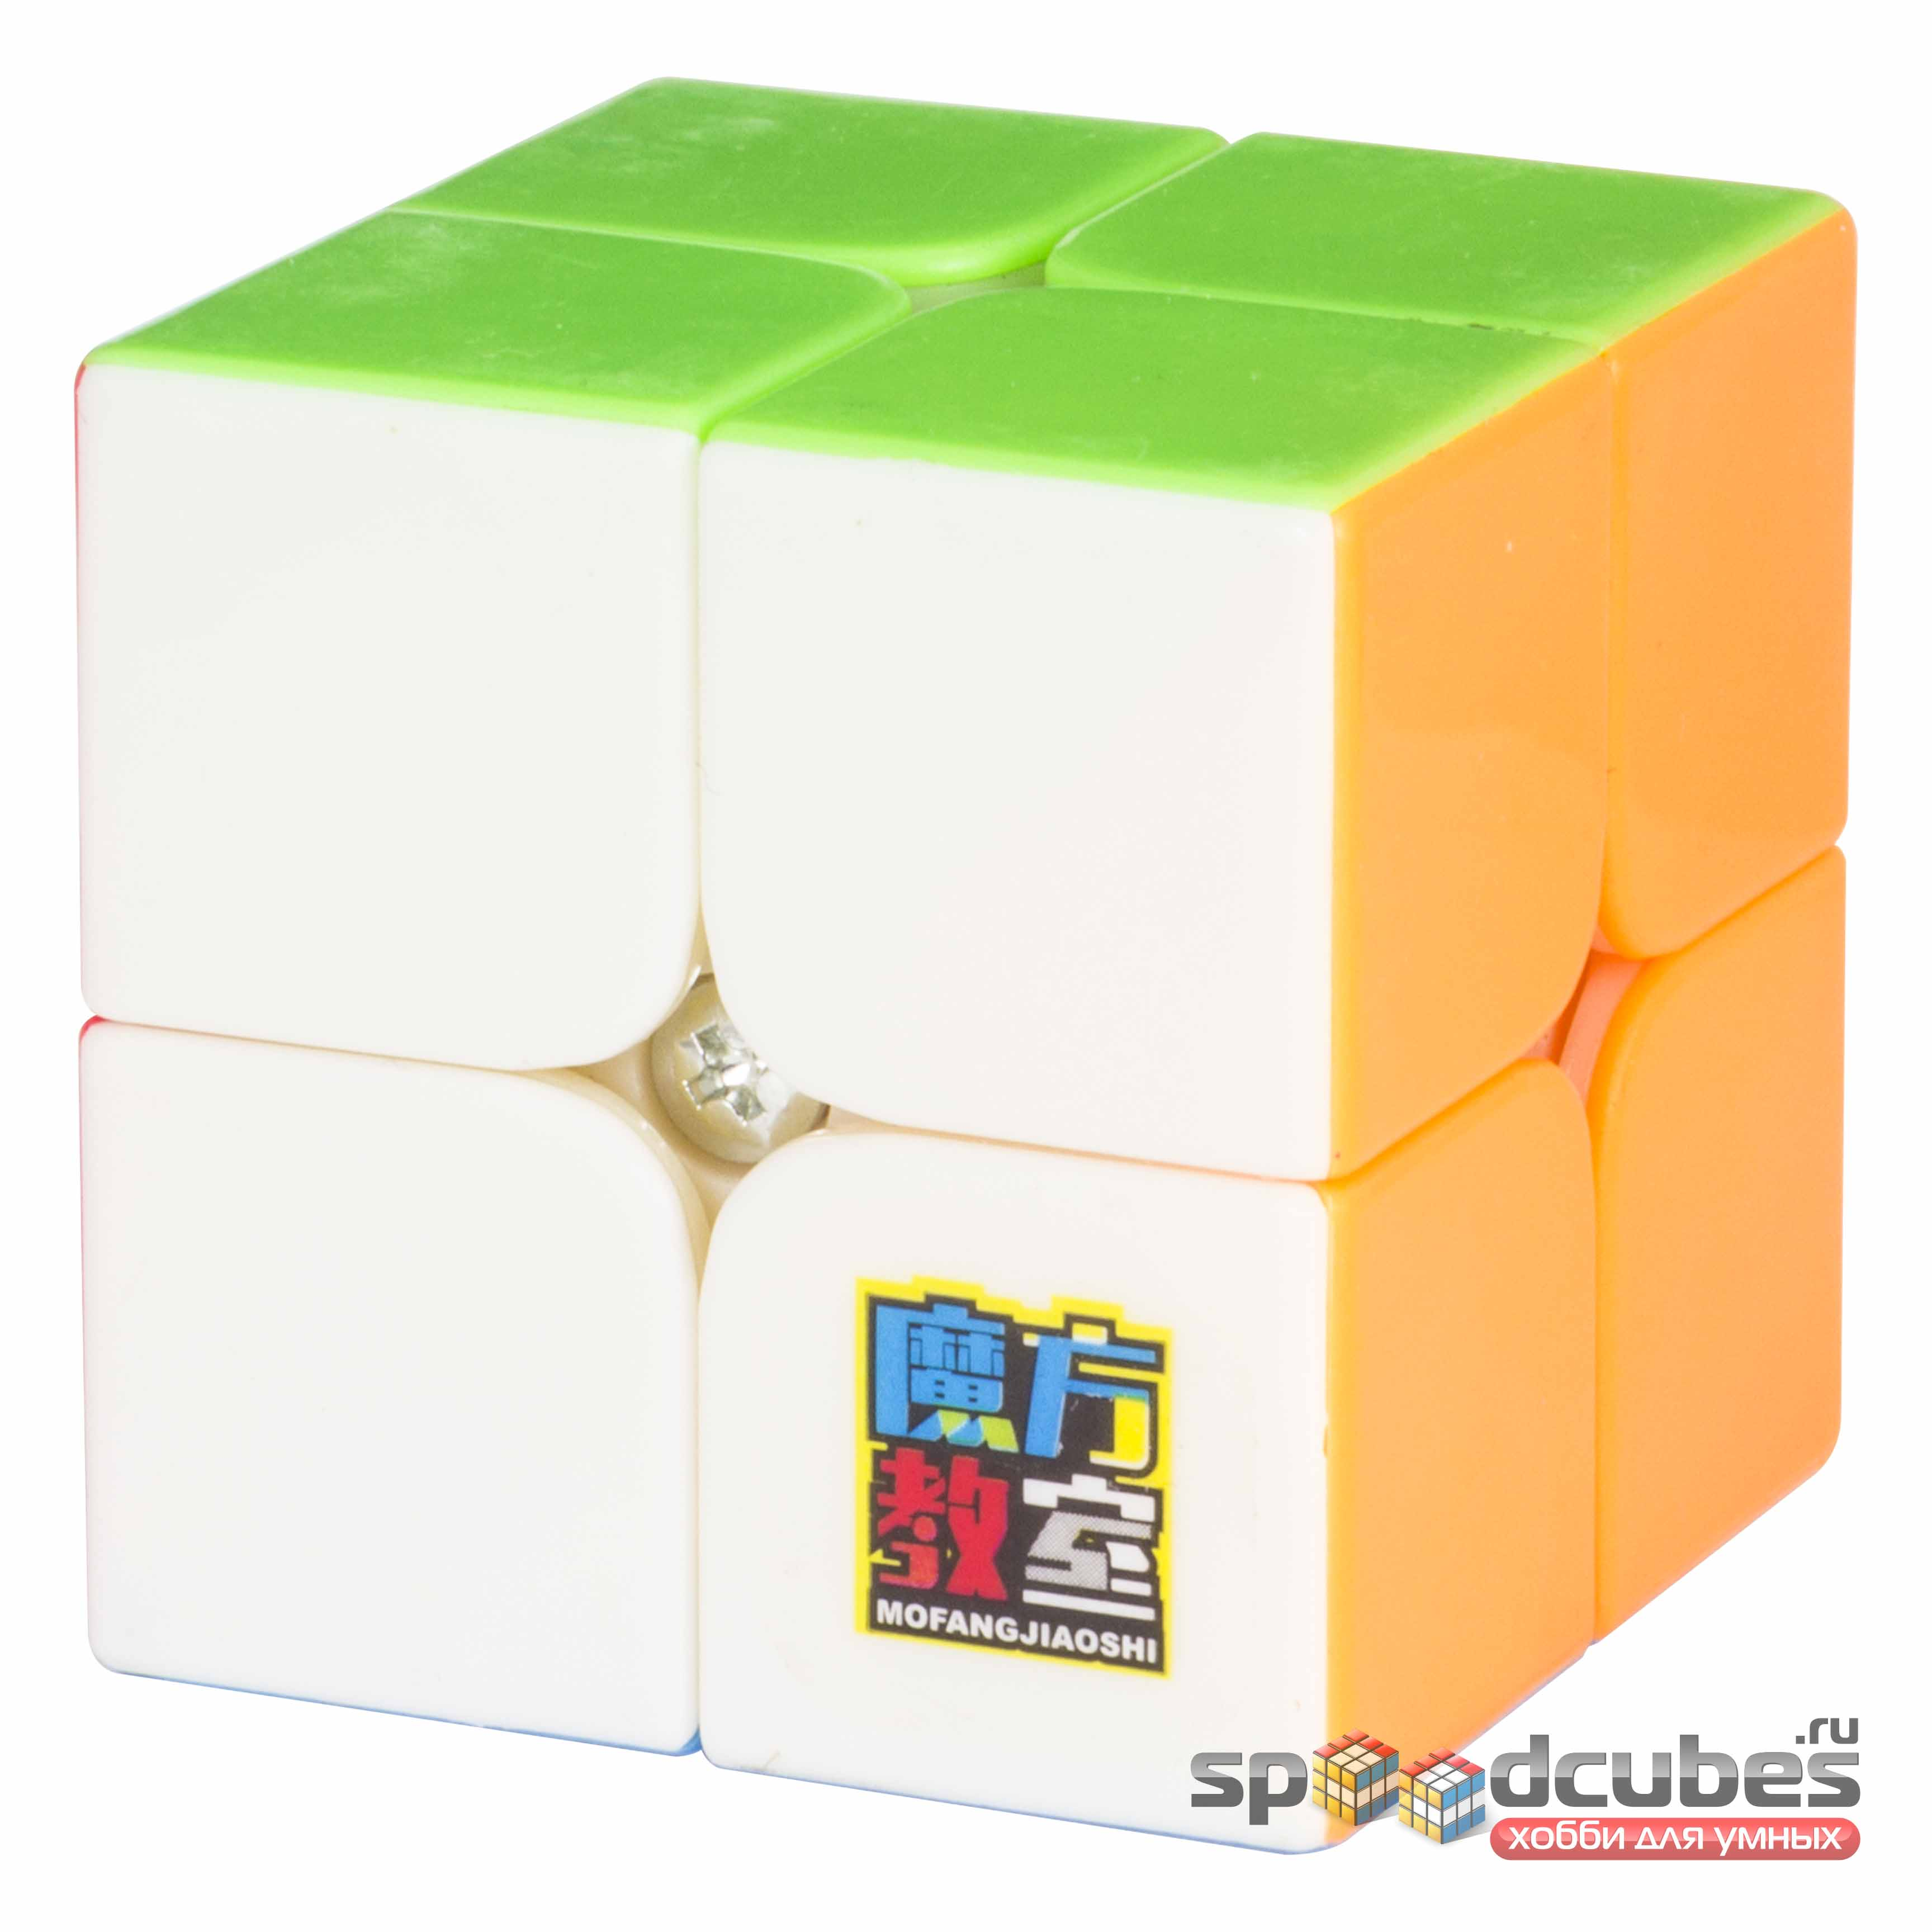 MoYu 2x2x2 MofangJiaoshi MF2s Color 2